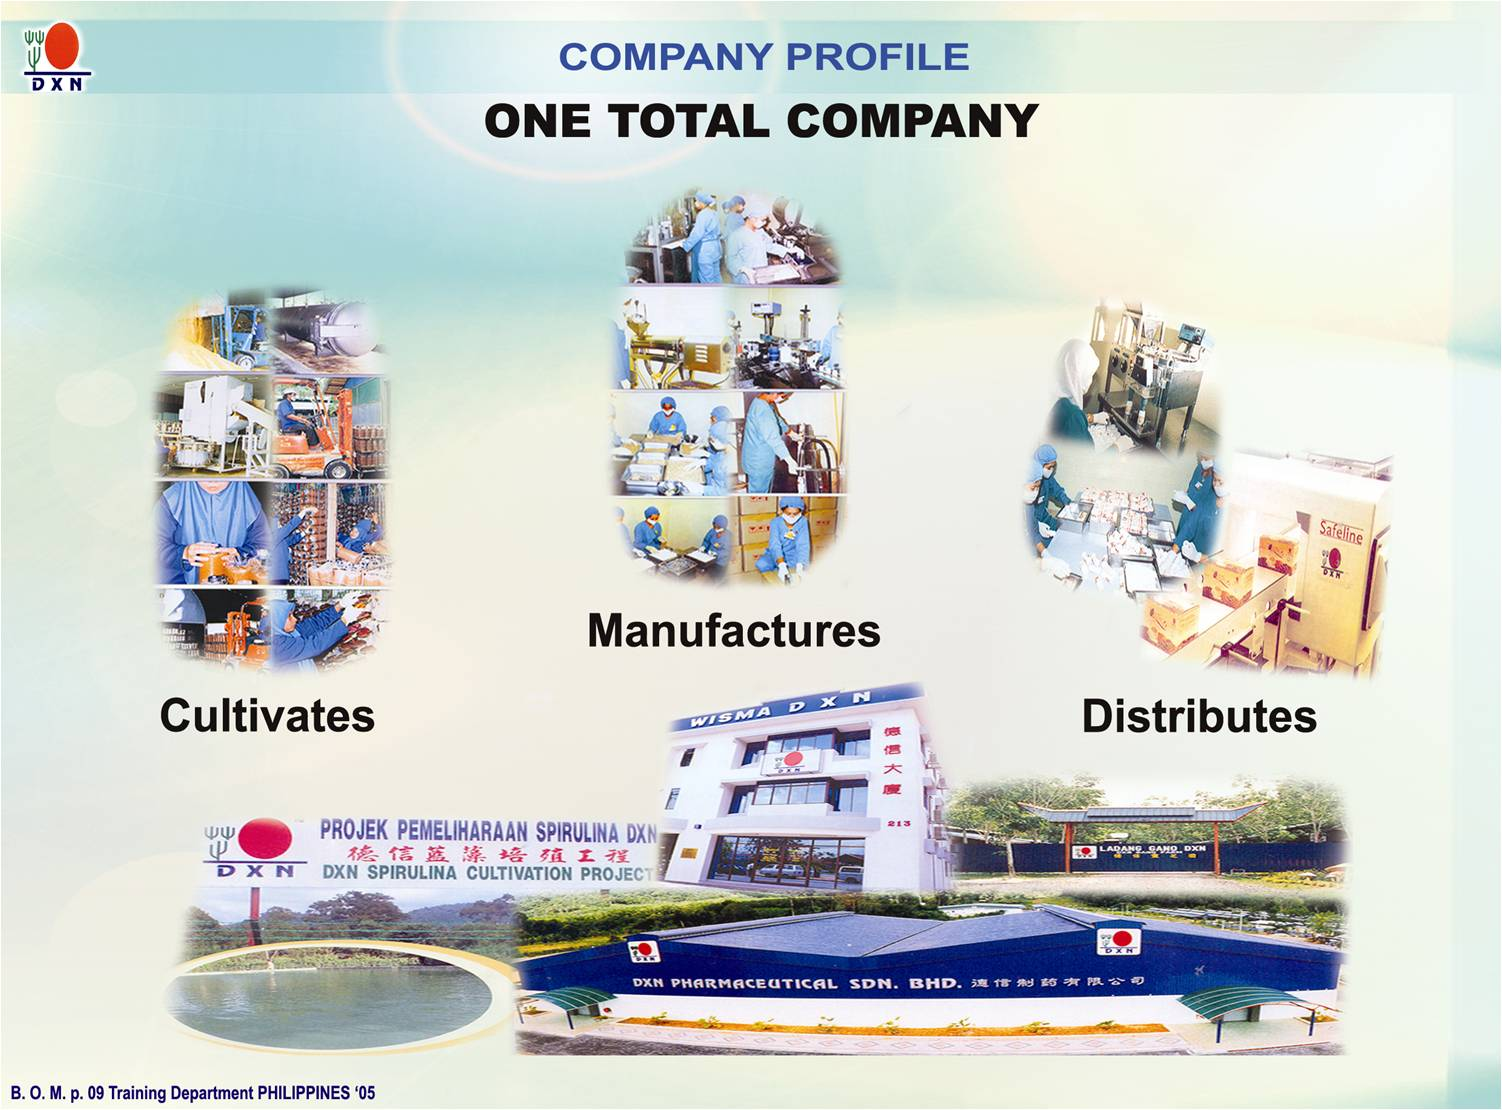 Dxn products submited images